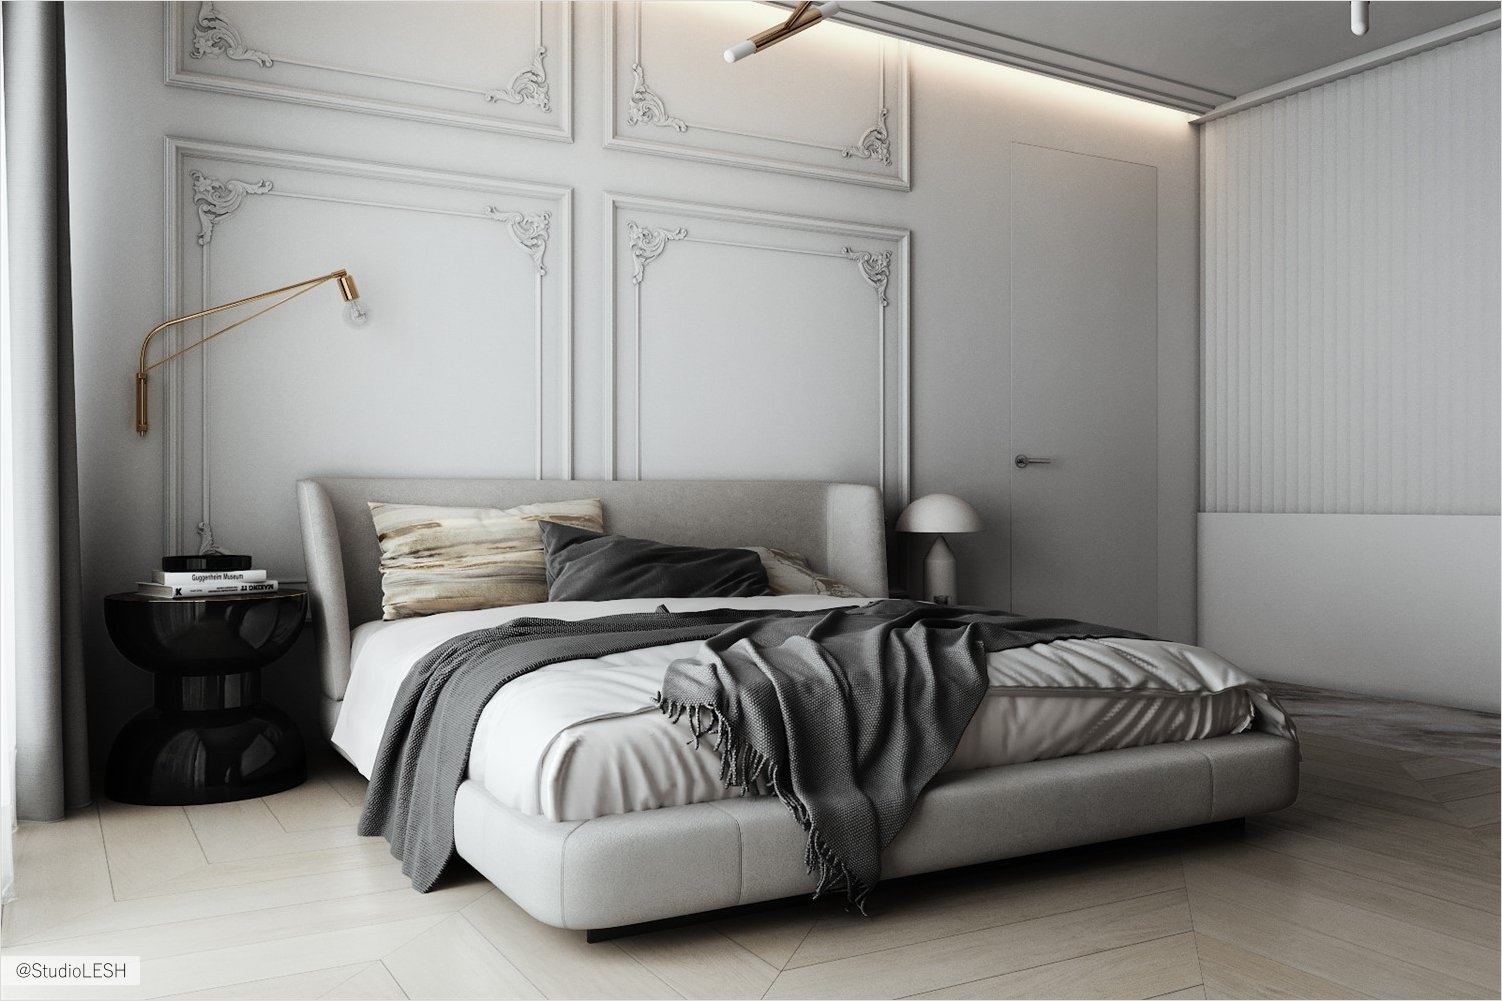 Classic bedroom with moldings in light gray